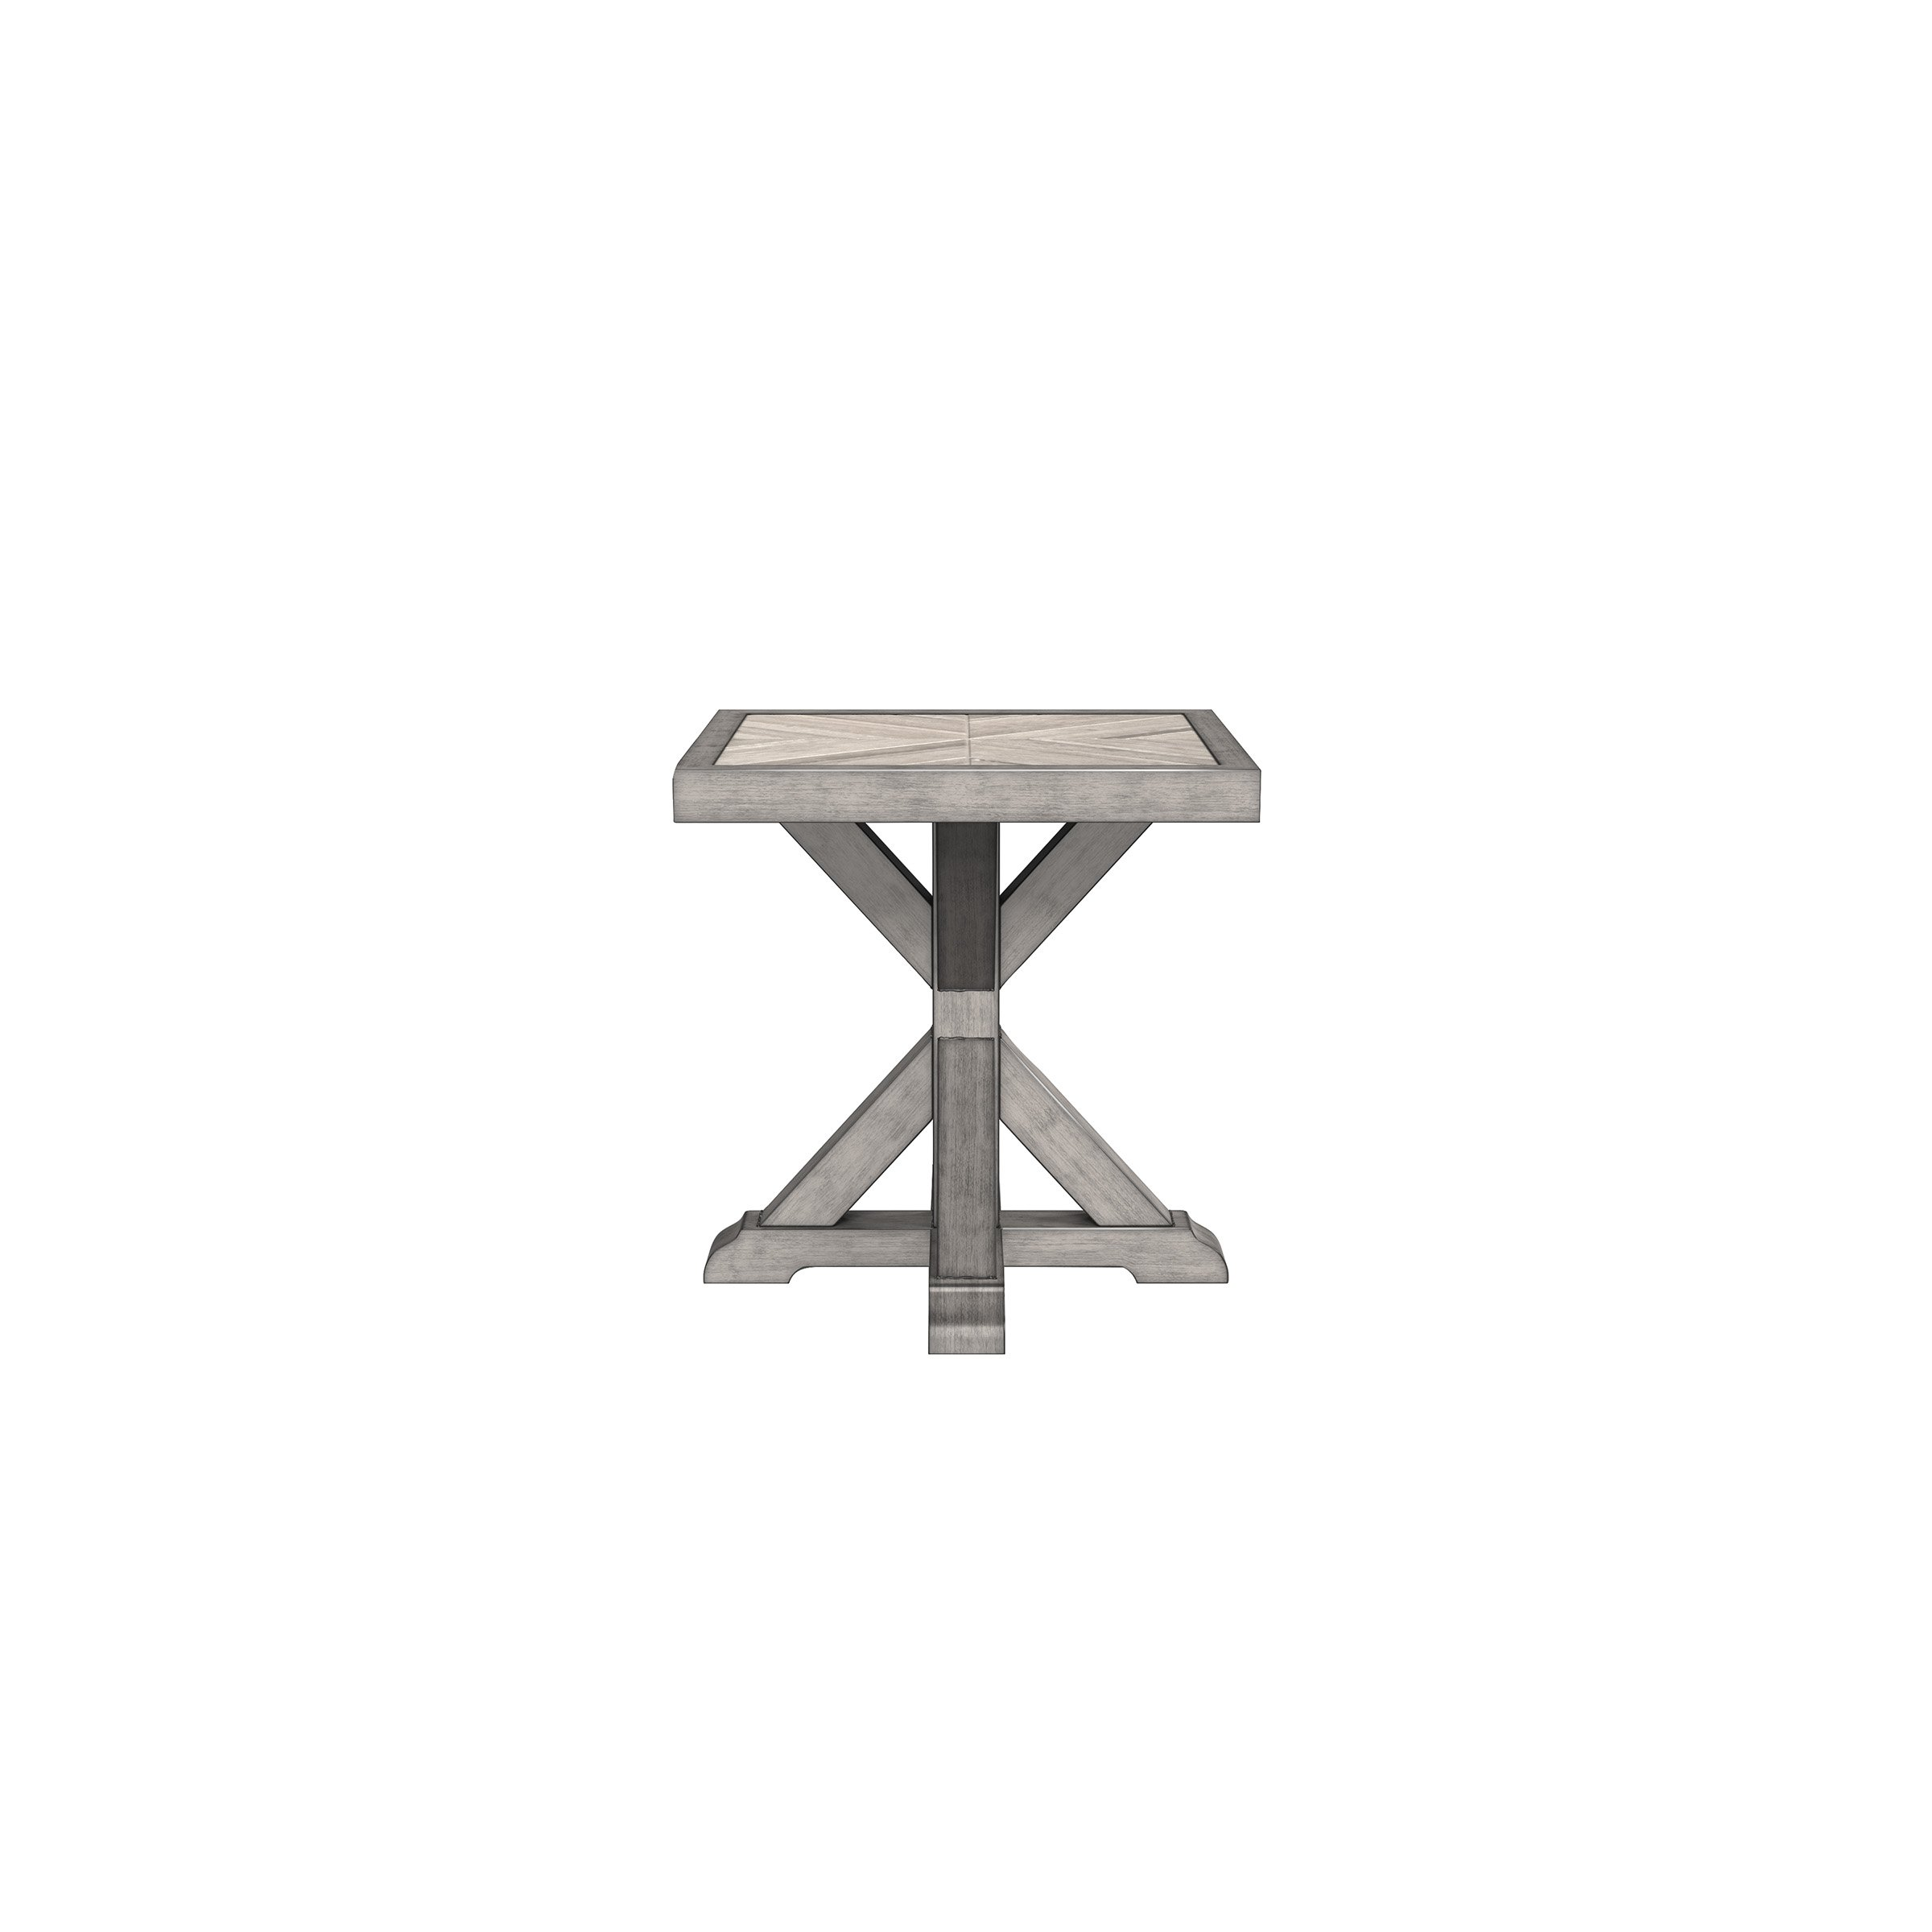 Signature Design by Ashley - Beachcroft Outdoor Square End ... on Beachcroft Beige Outdoor Living Room Set id=78698